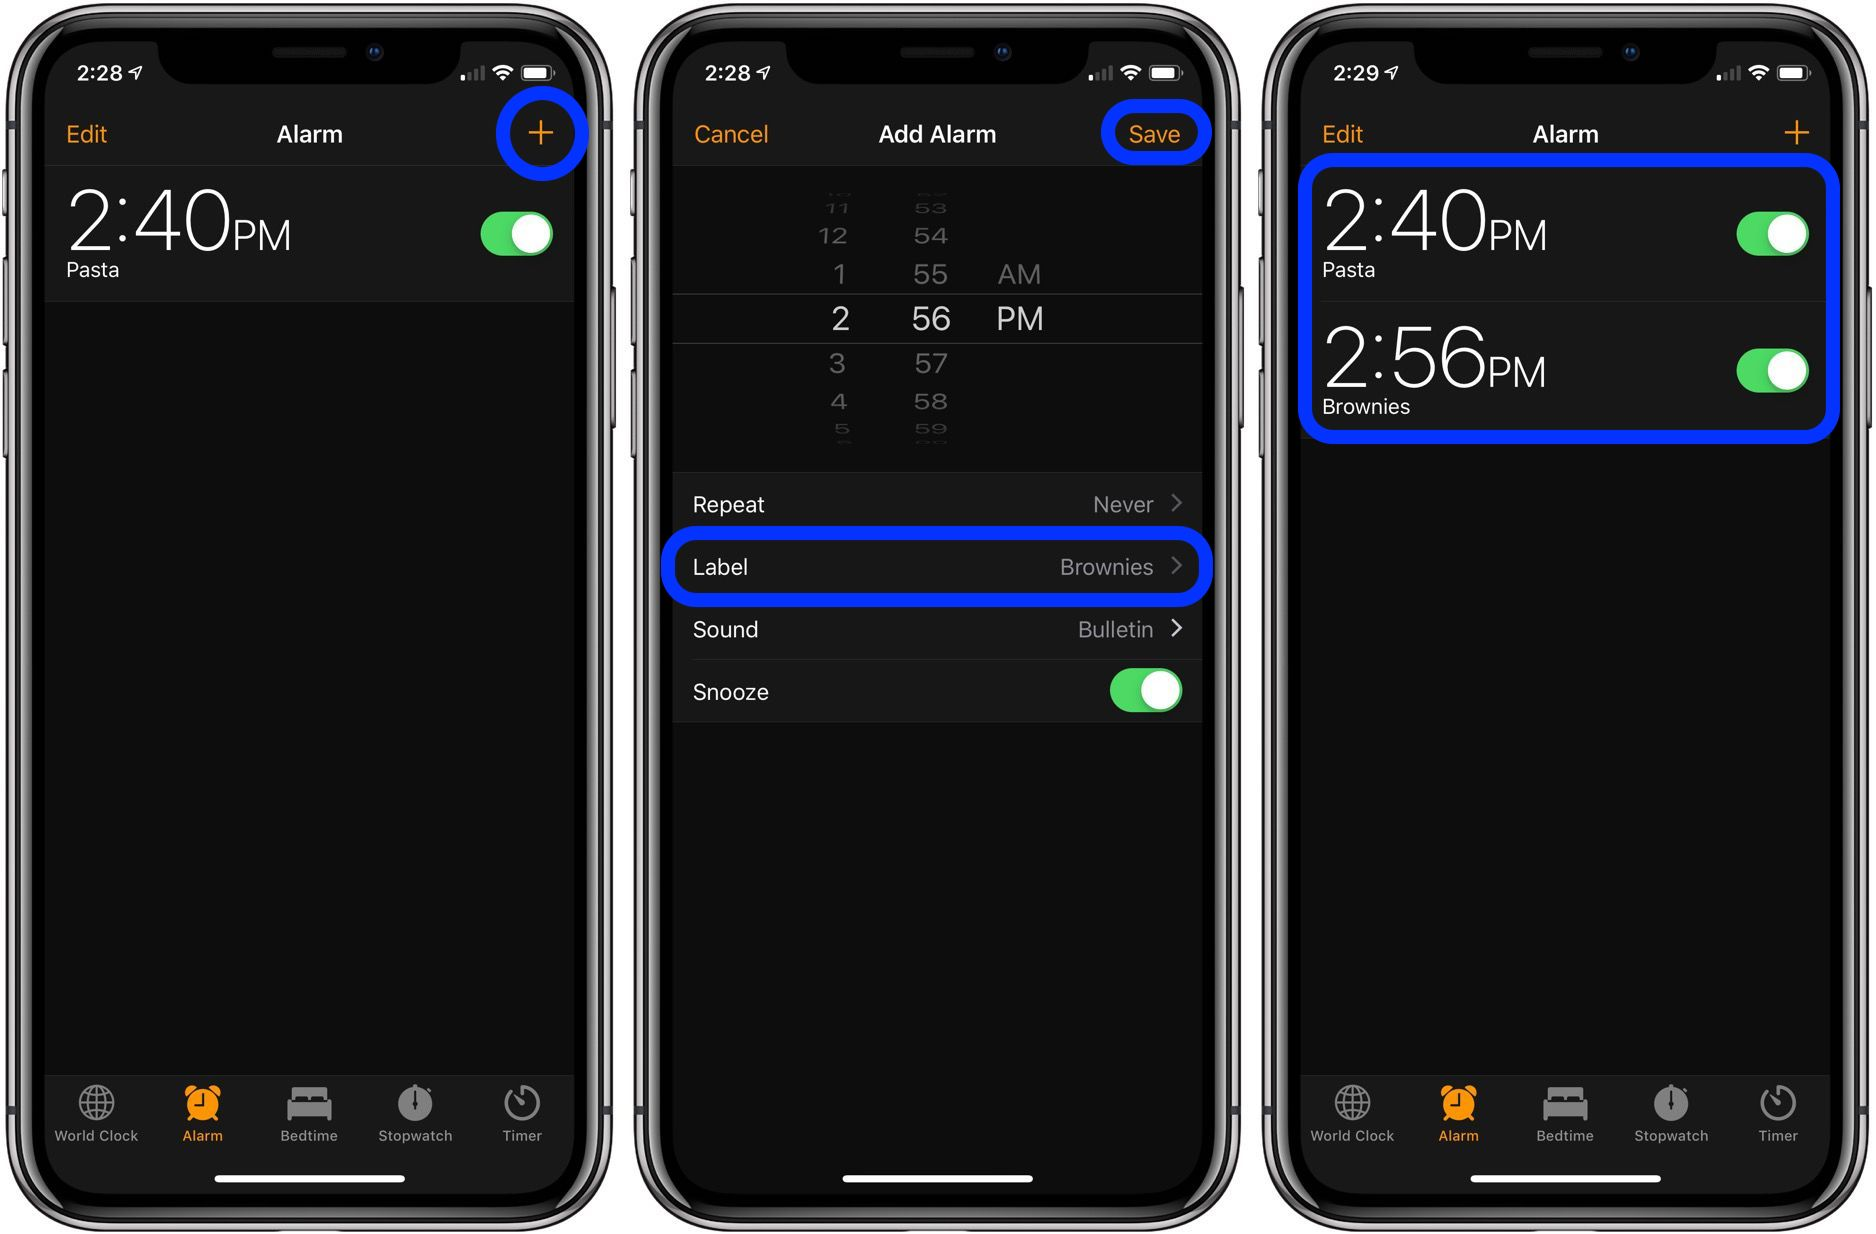 set timers on iPhone